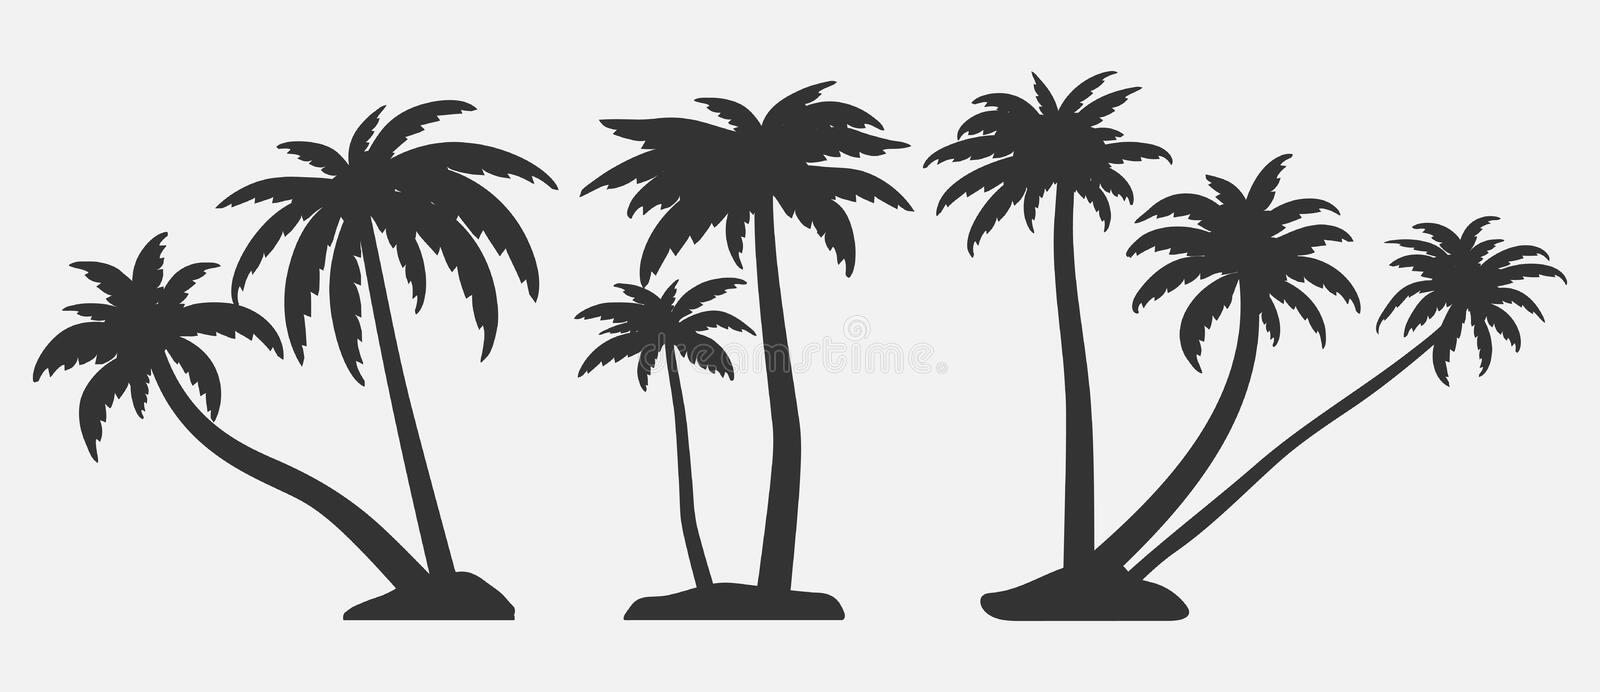 Set of palm trees silhouettes. royalty free illustration